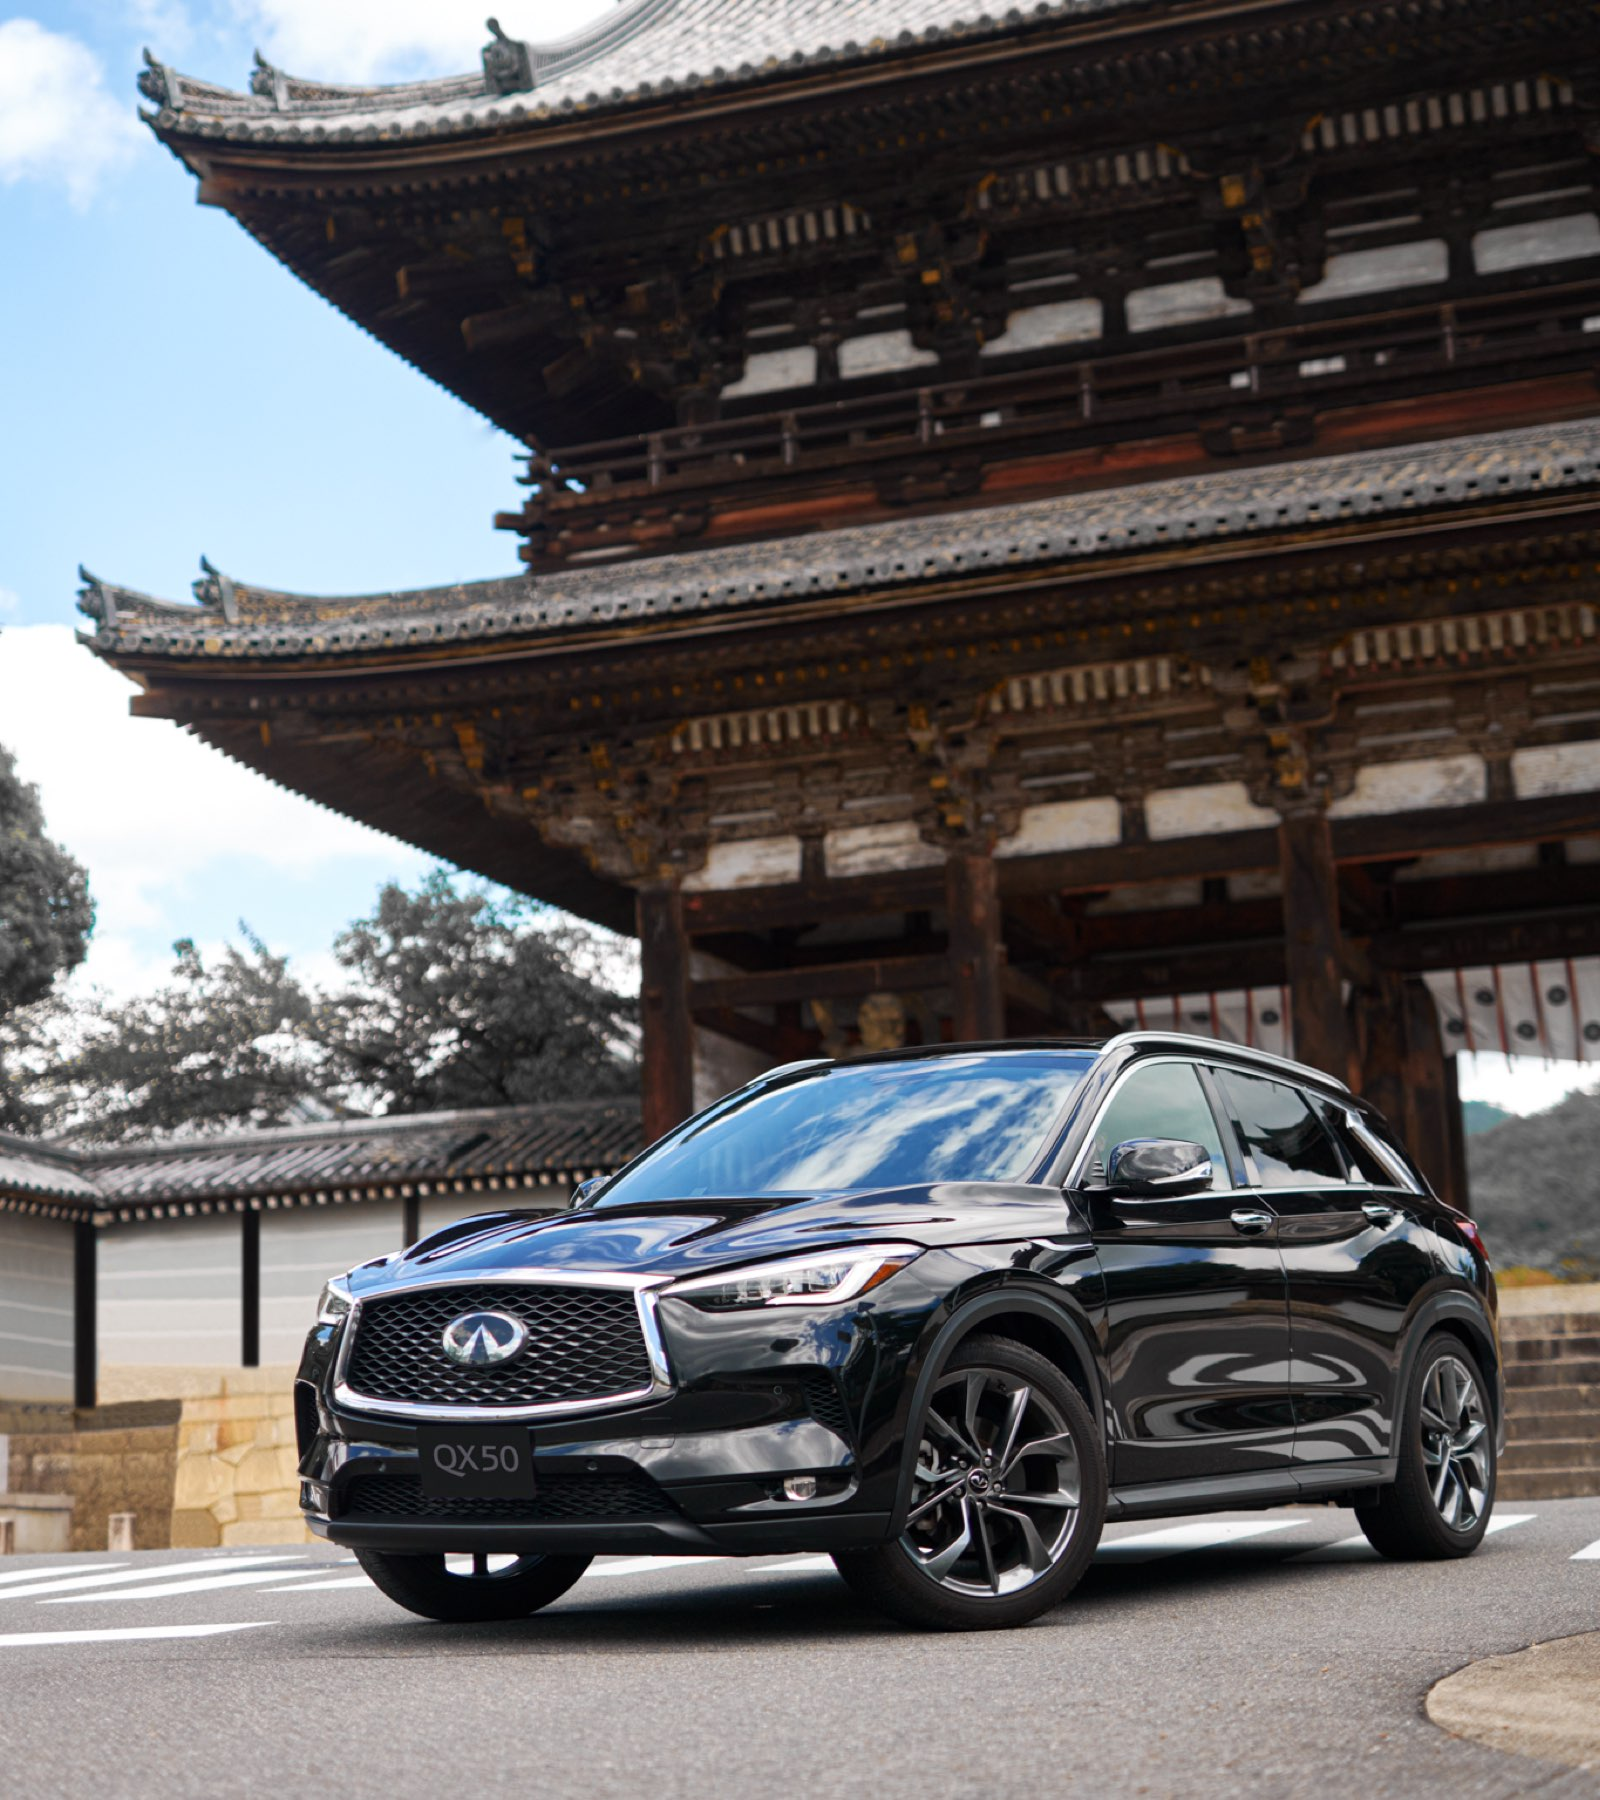 2021 INFINITI QX50 and Japanese Temple